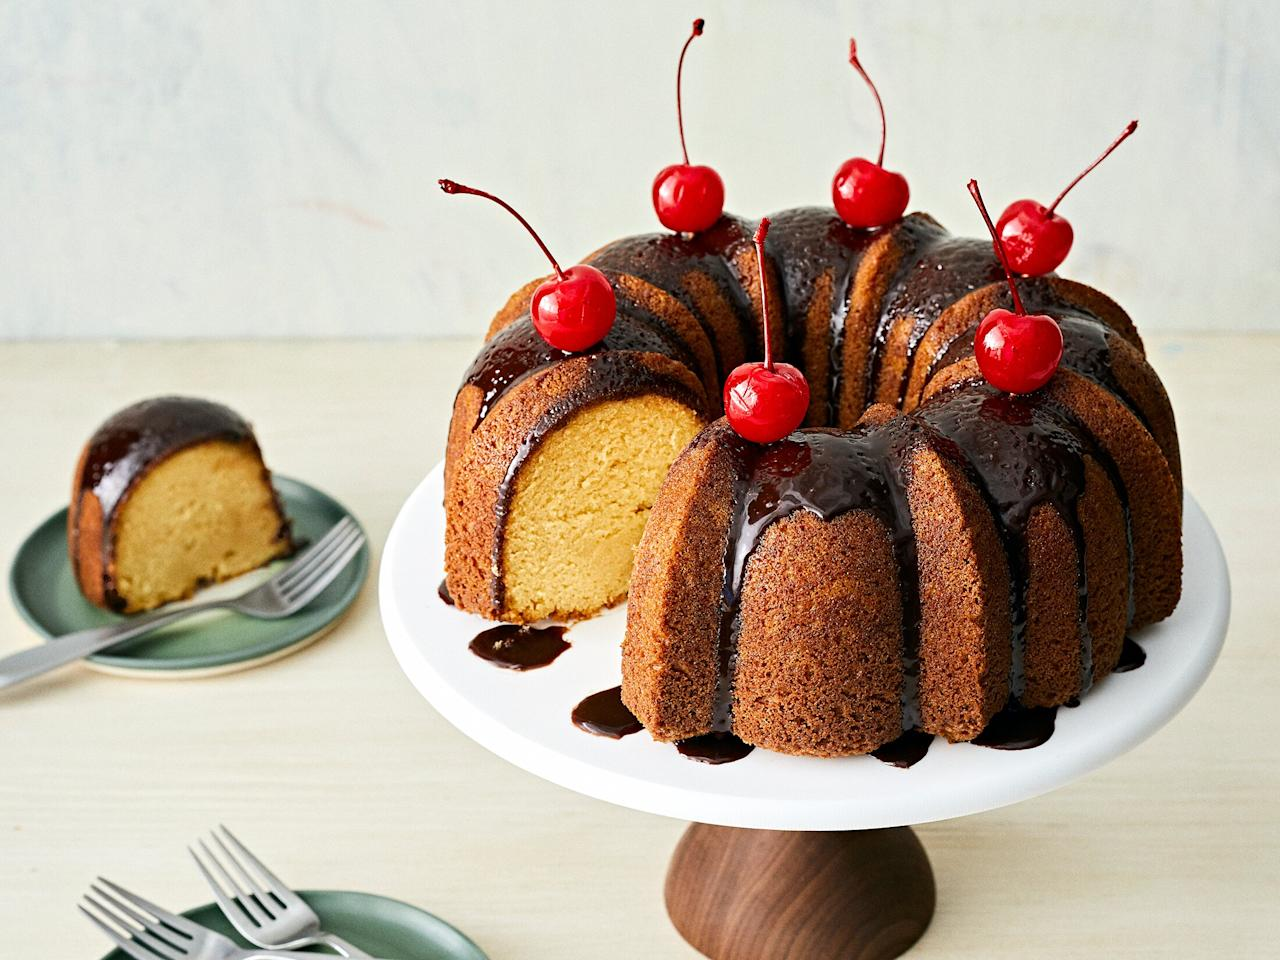 """<p>You know how some cocktails are so good they're basically dessert? This mudslide cake takes that even further, making the classic dessert cocktail into an actual dessert. The inclusion of both Irish and coffee liqueurs give the cake depth of flavor, and the chocolate glaze and cherries give a nod to the traditional mudslide garnishes. Eat it with a dollop of whipped cream or ice cream. No straw required. </p> <p><a href=""""https://www.myrecipes.com/recipe/mudslide-cake"""">Mudslide Cake Recipe</a></p>"""